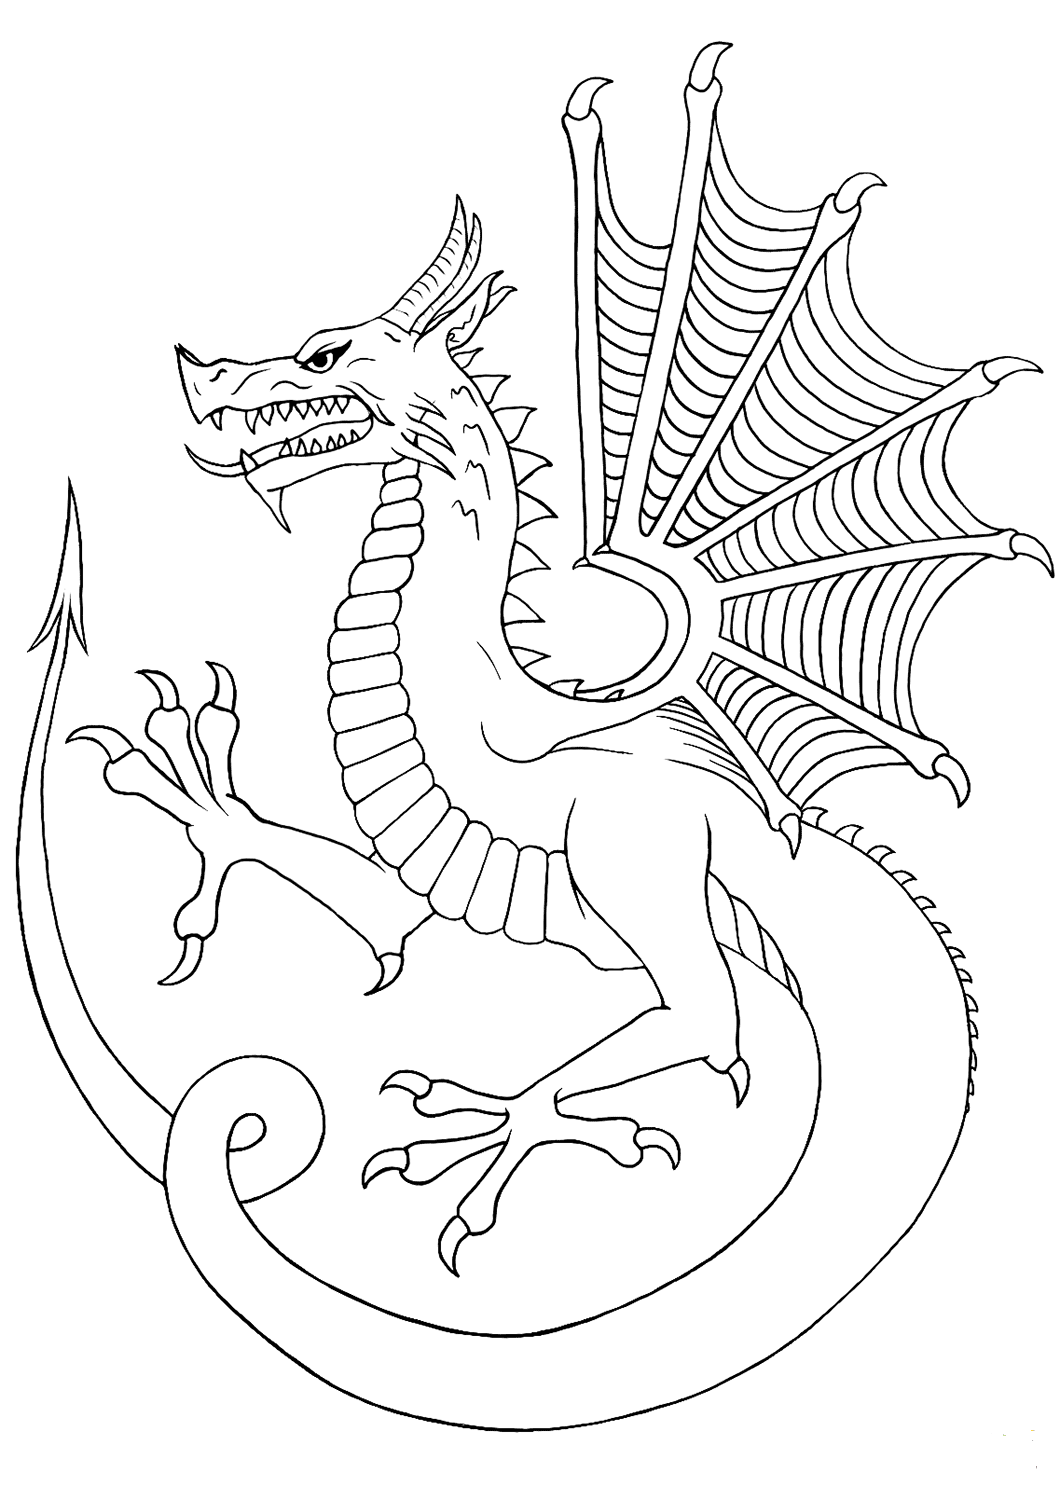 dragon coloring pages free advanced dragon coloring pages at getdrawings free download coloring free dragon pages